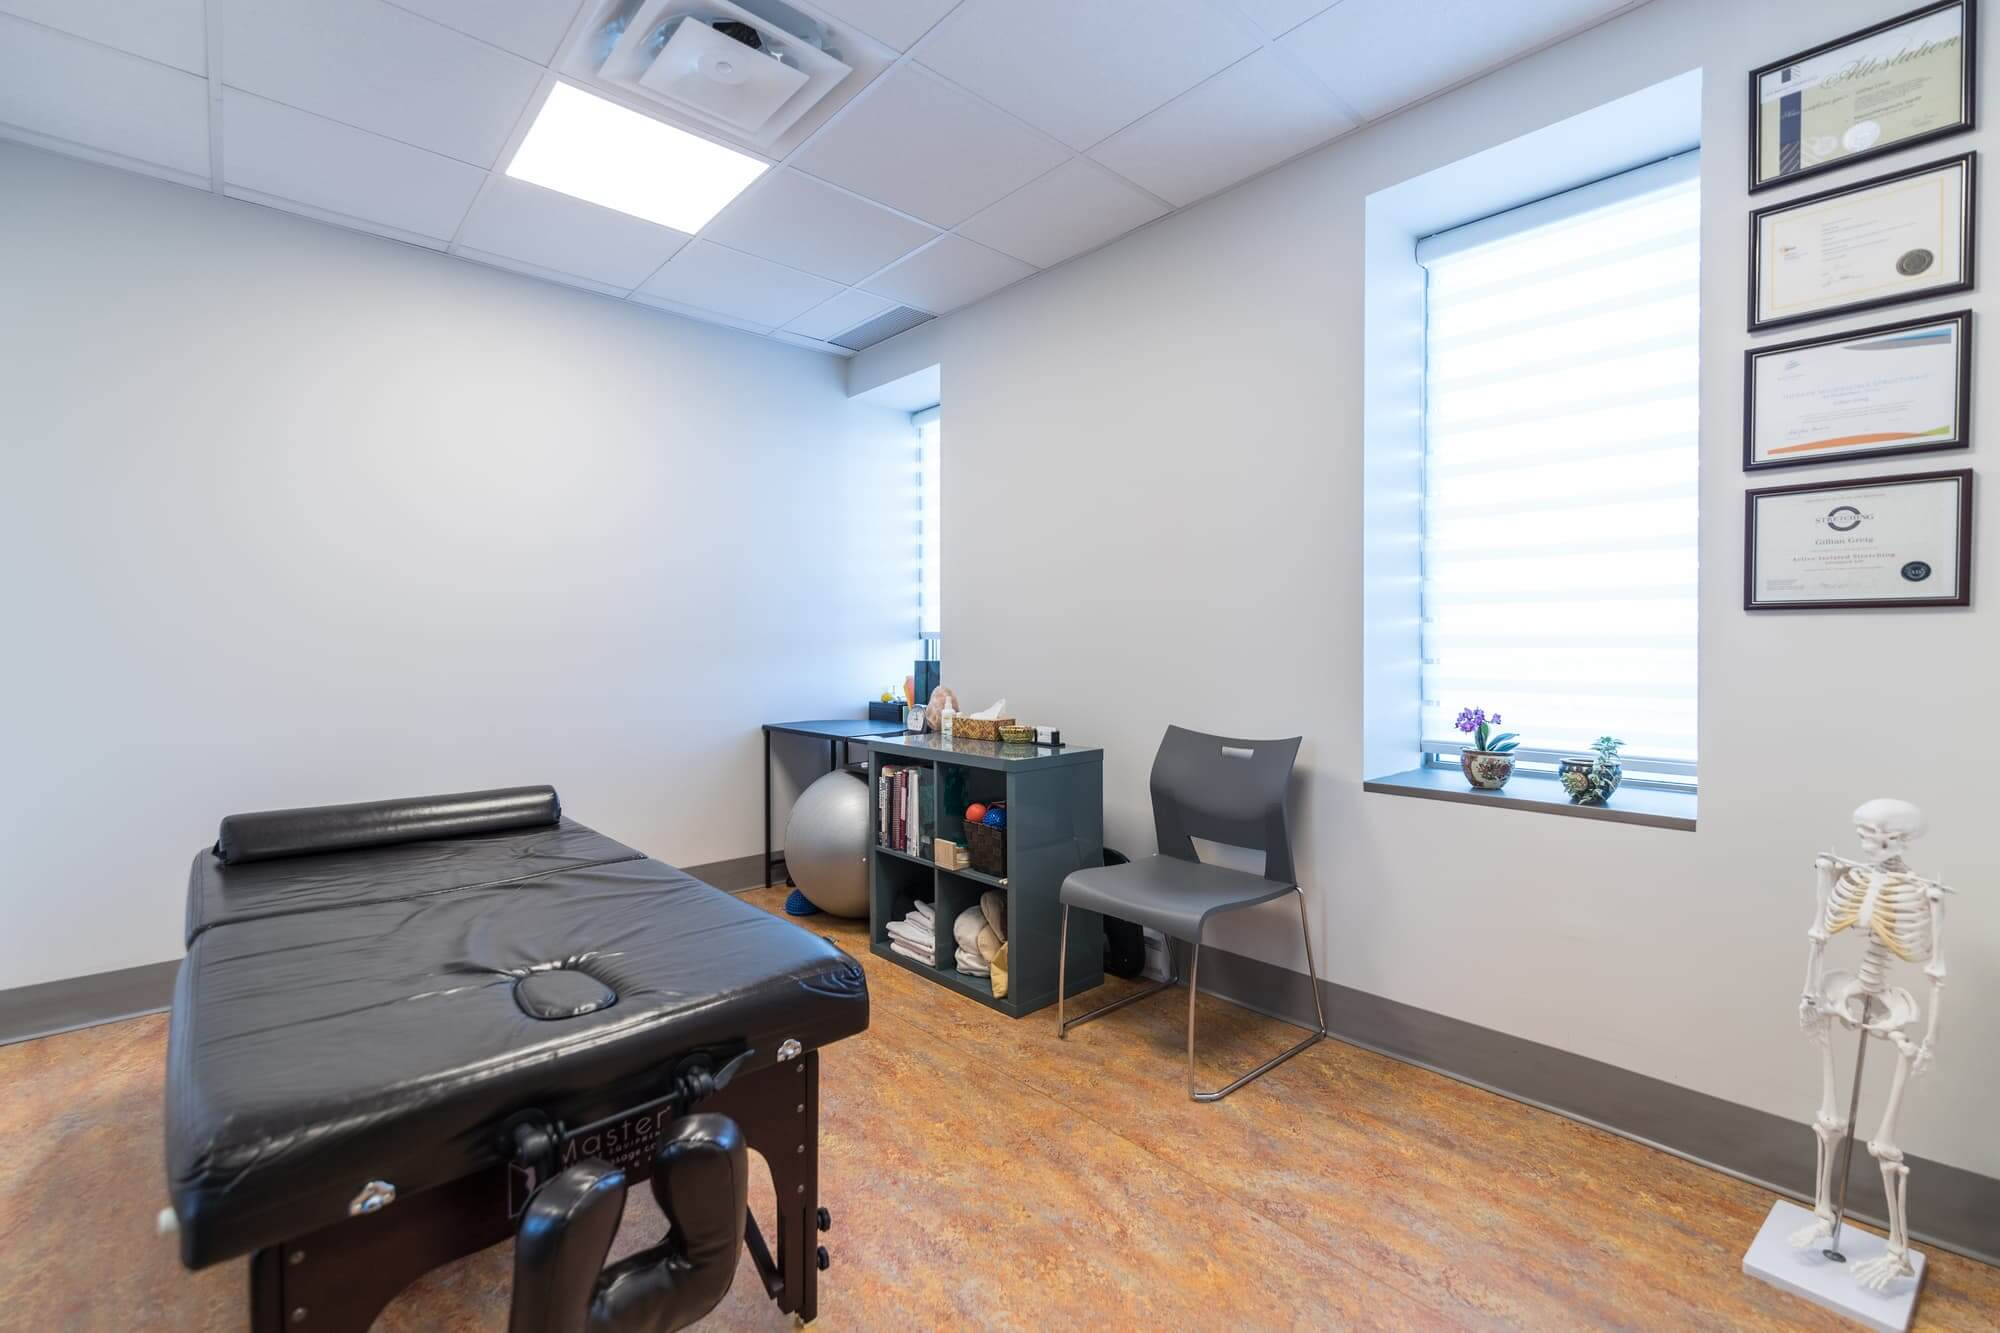 Newly renovated massotherapy room of a physiotherapy clinic